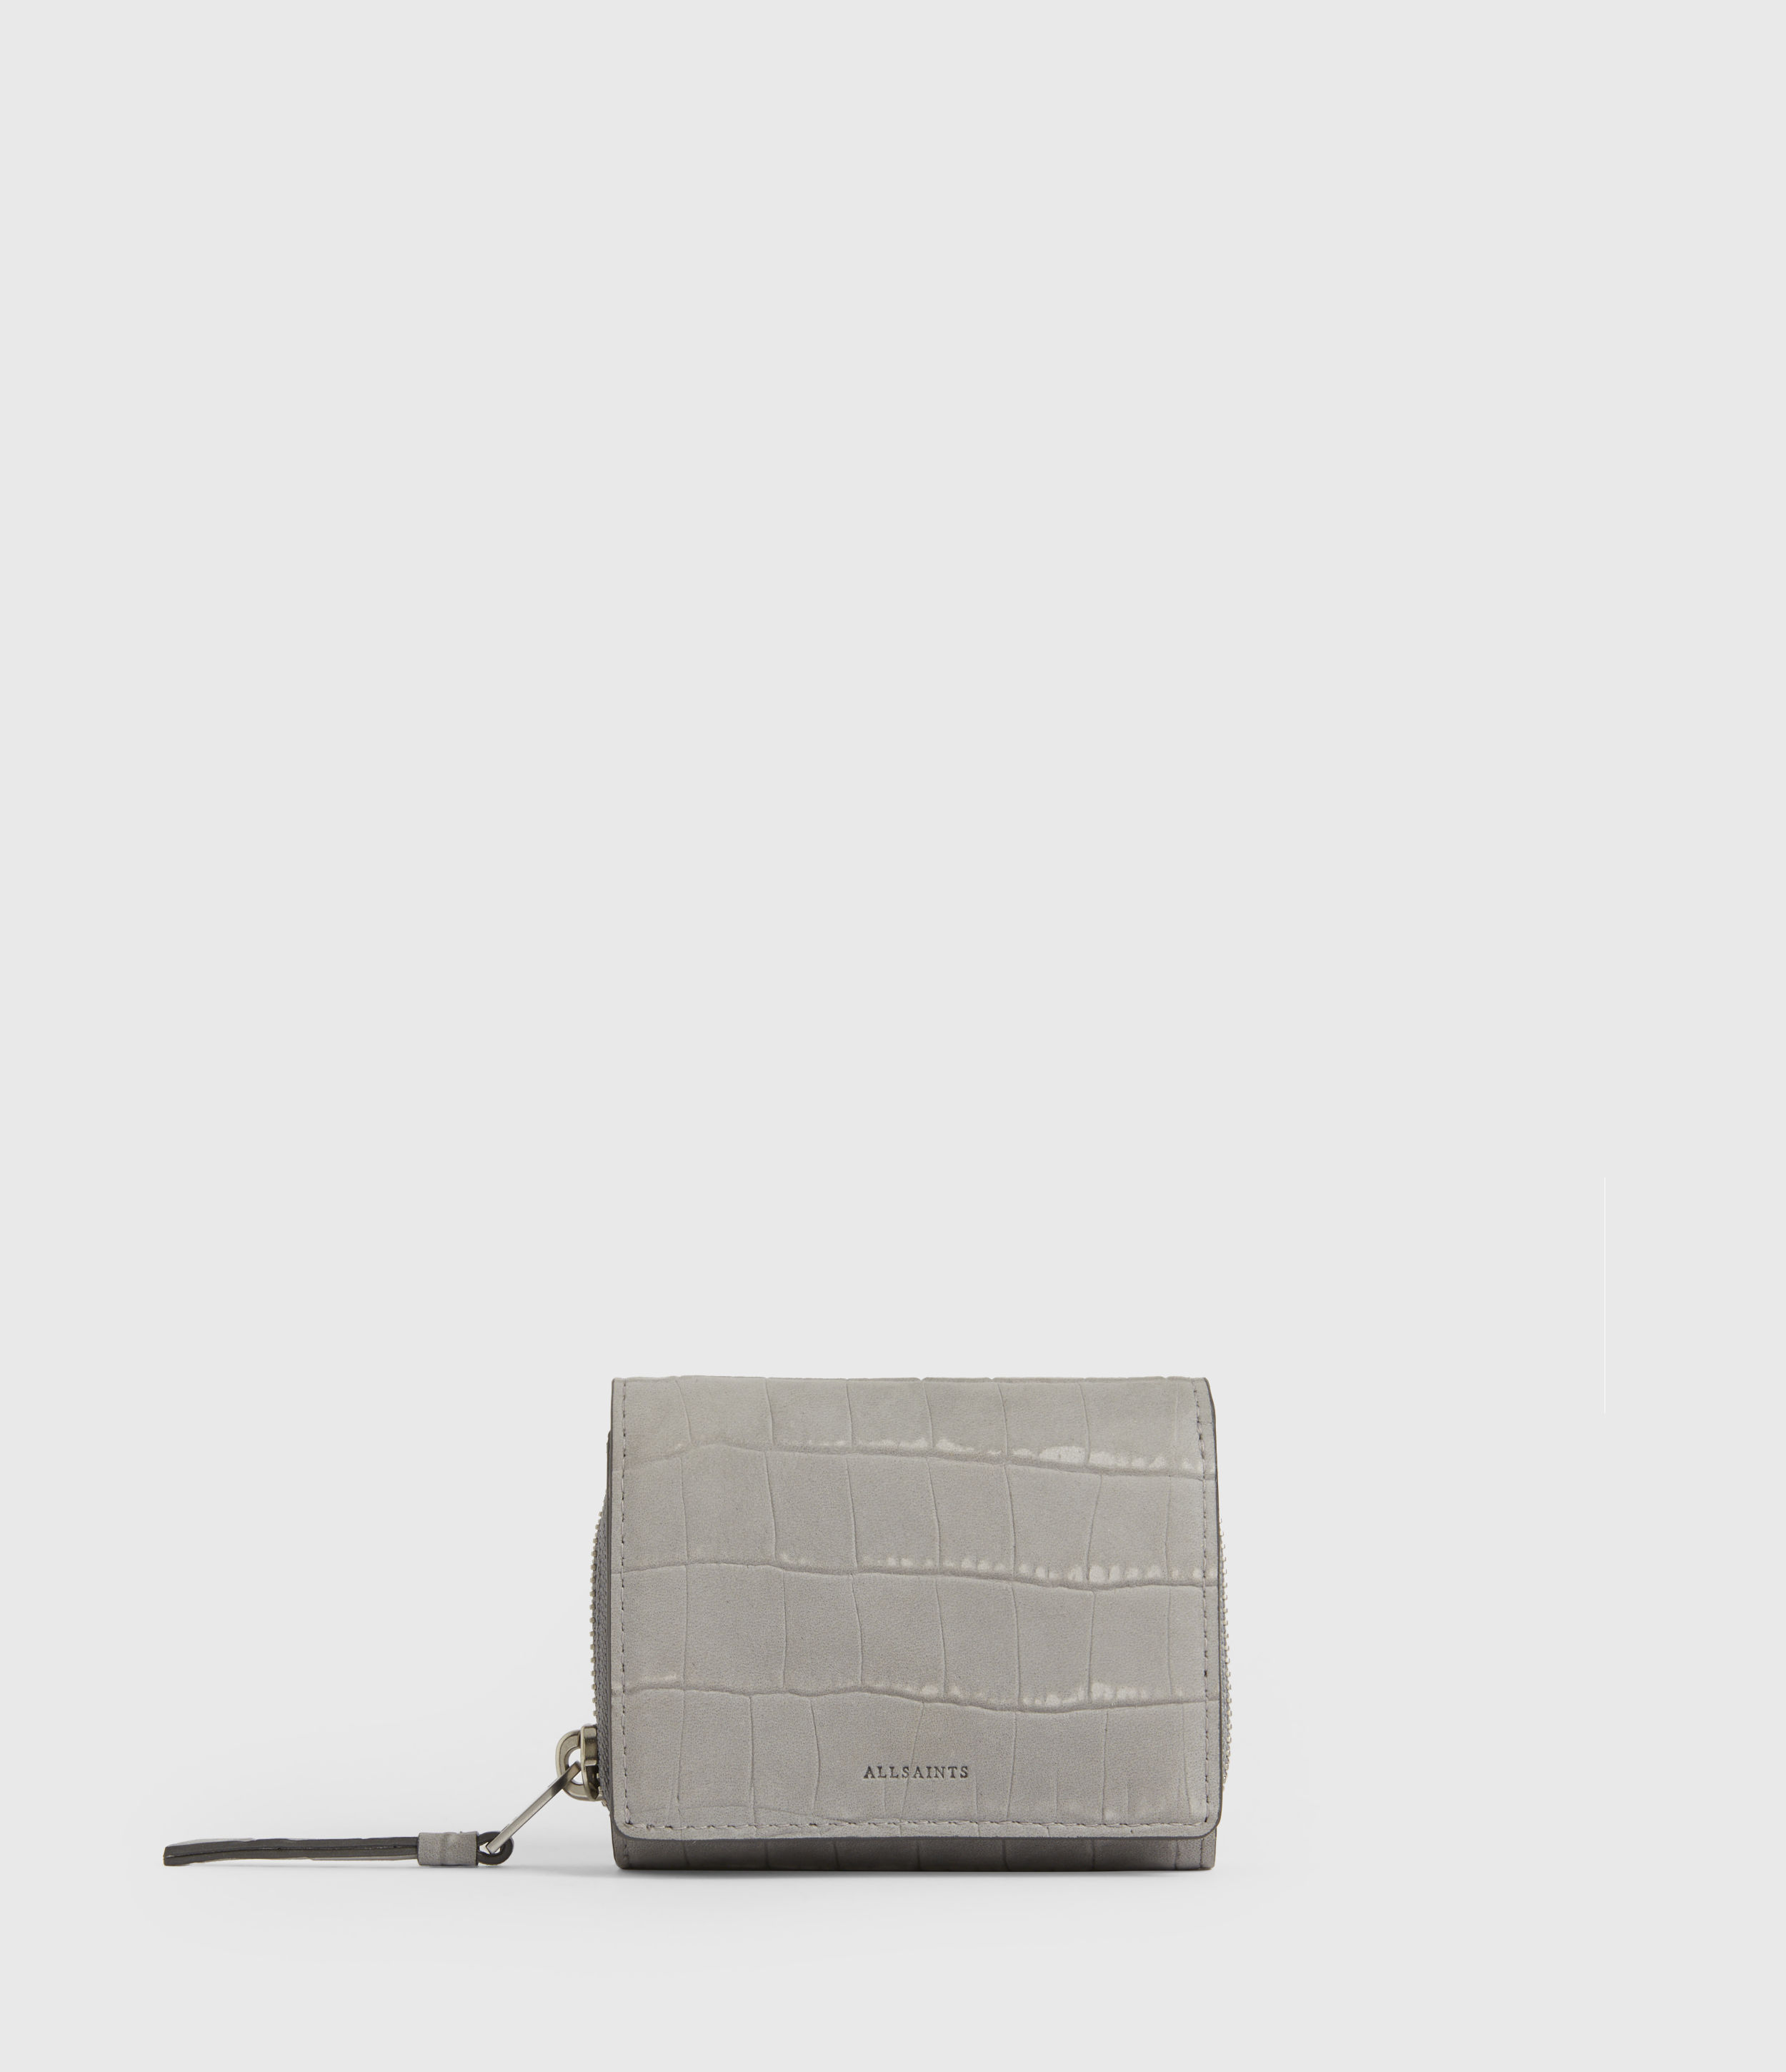 AllSaints Bede Leather Cardholder